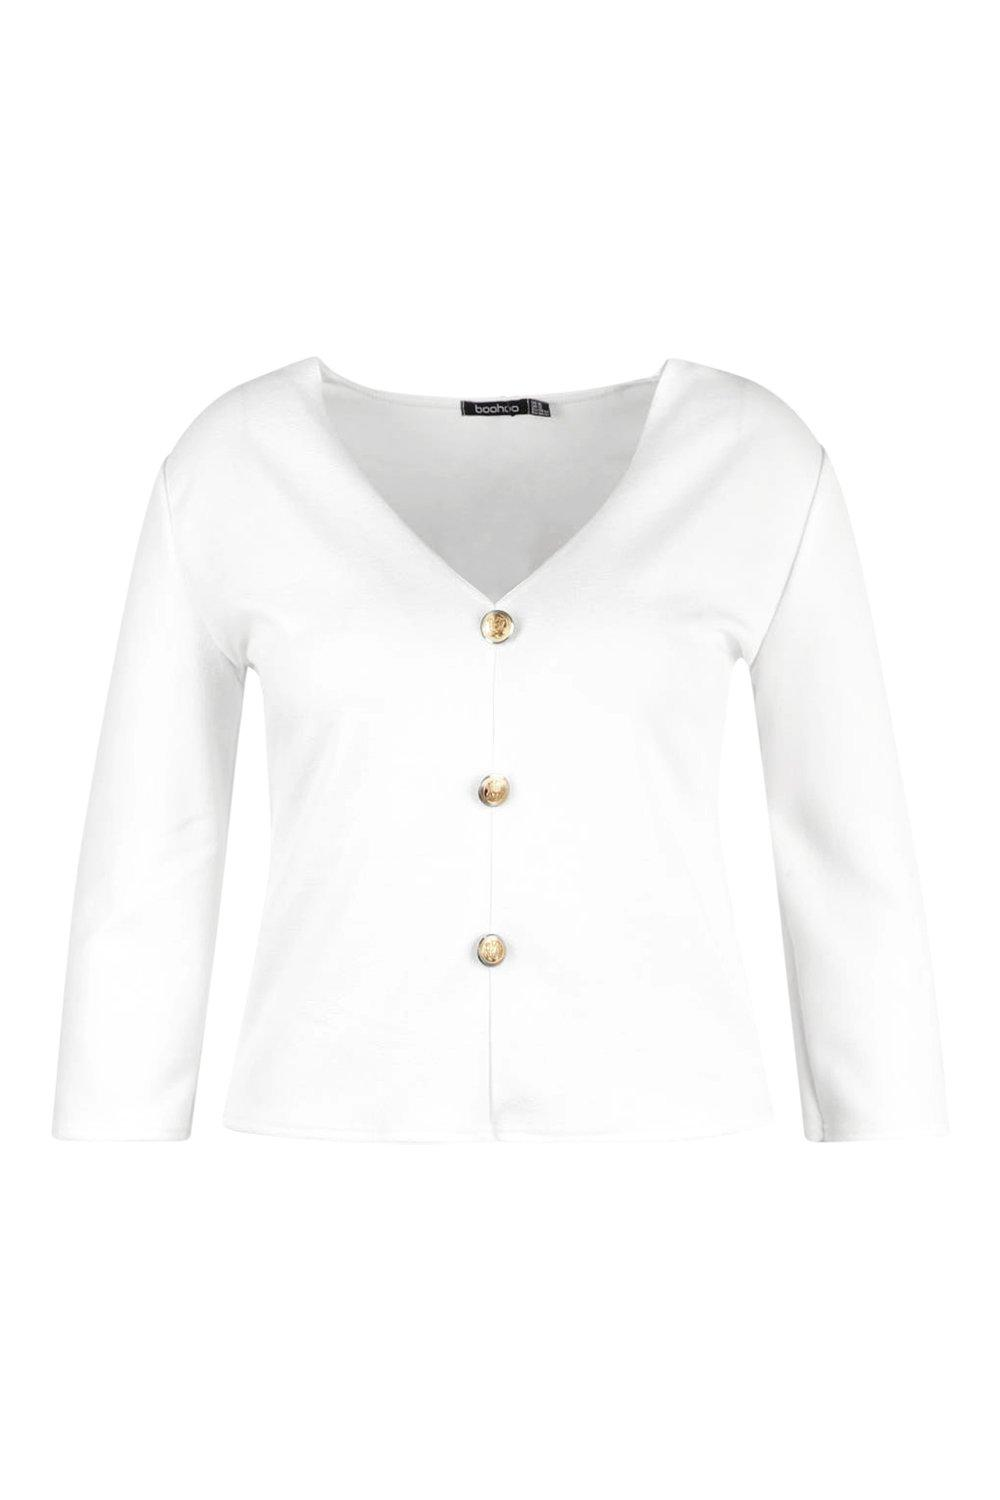 Plus Top ivory Sleeve 3 4 Gold Button wqnTwA4r